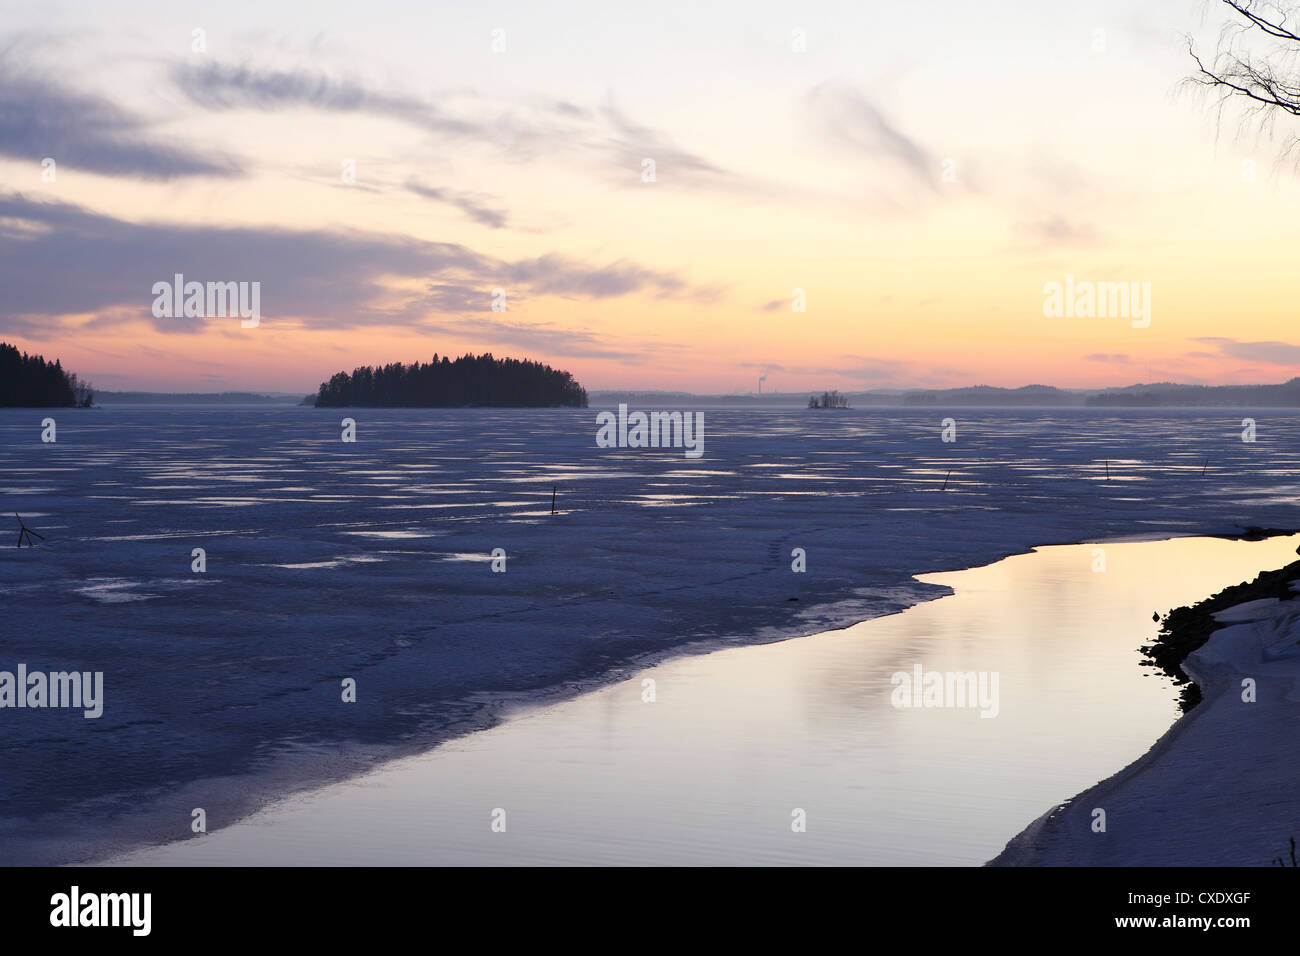 Sunset over the mainly frozen surface of Lake Pyhajarvi, the ice surrounds islands, at Tampere, Pirkanmaa, Finland, - Stock Image